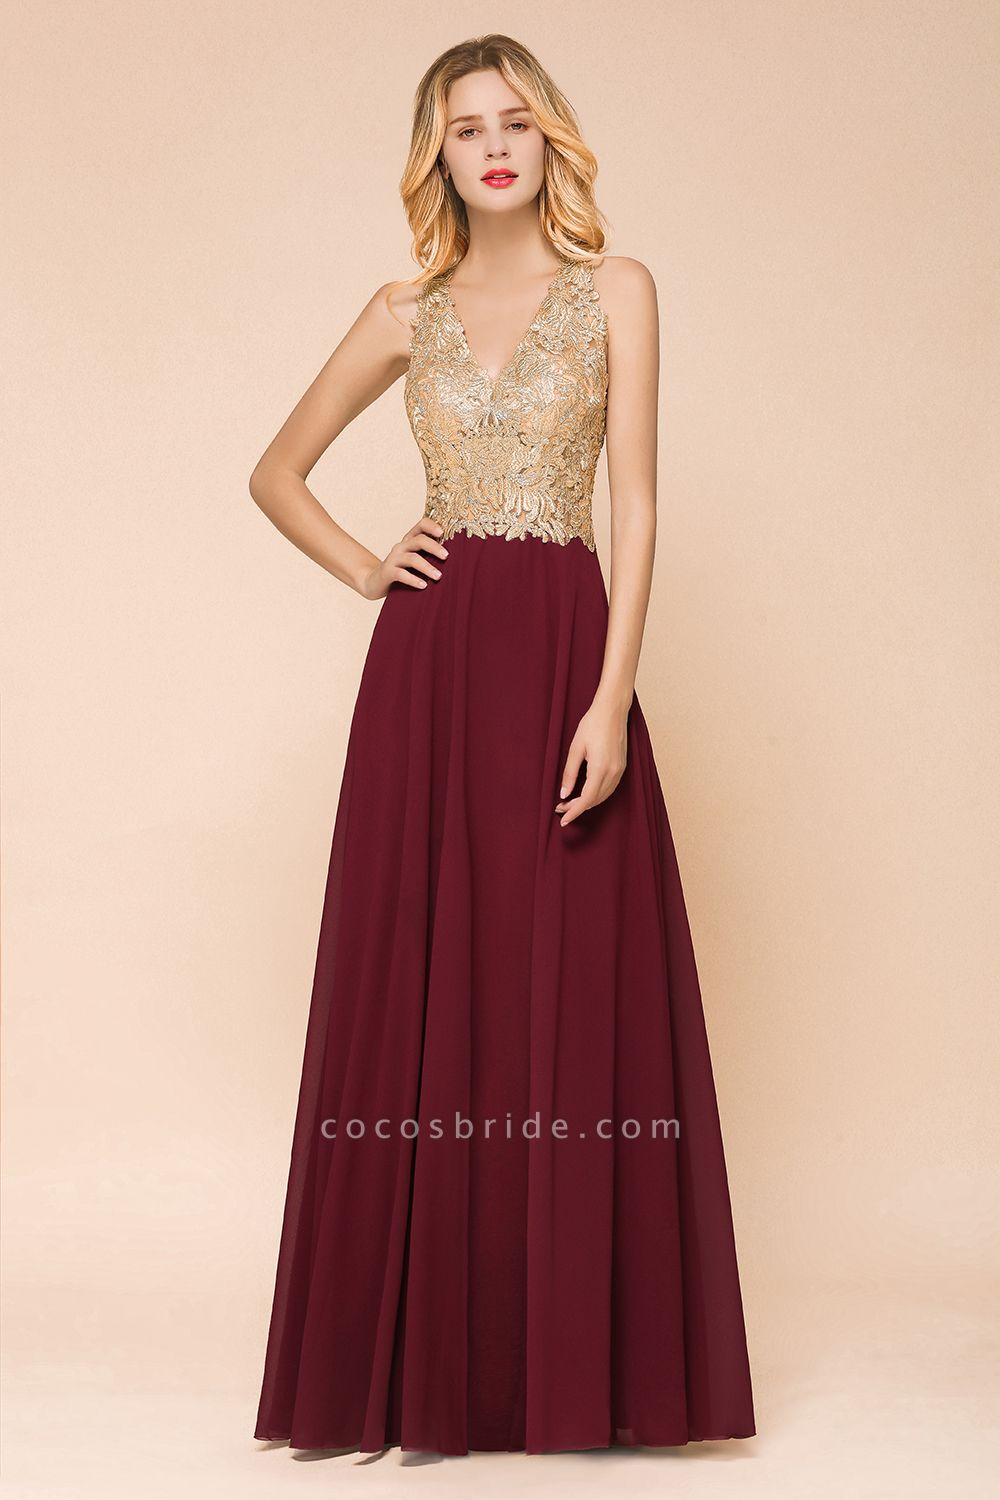 Awesome V-neck Chiffon Evening Dress